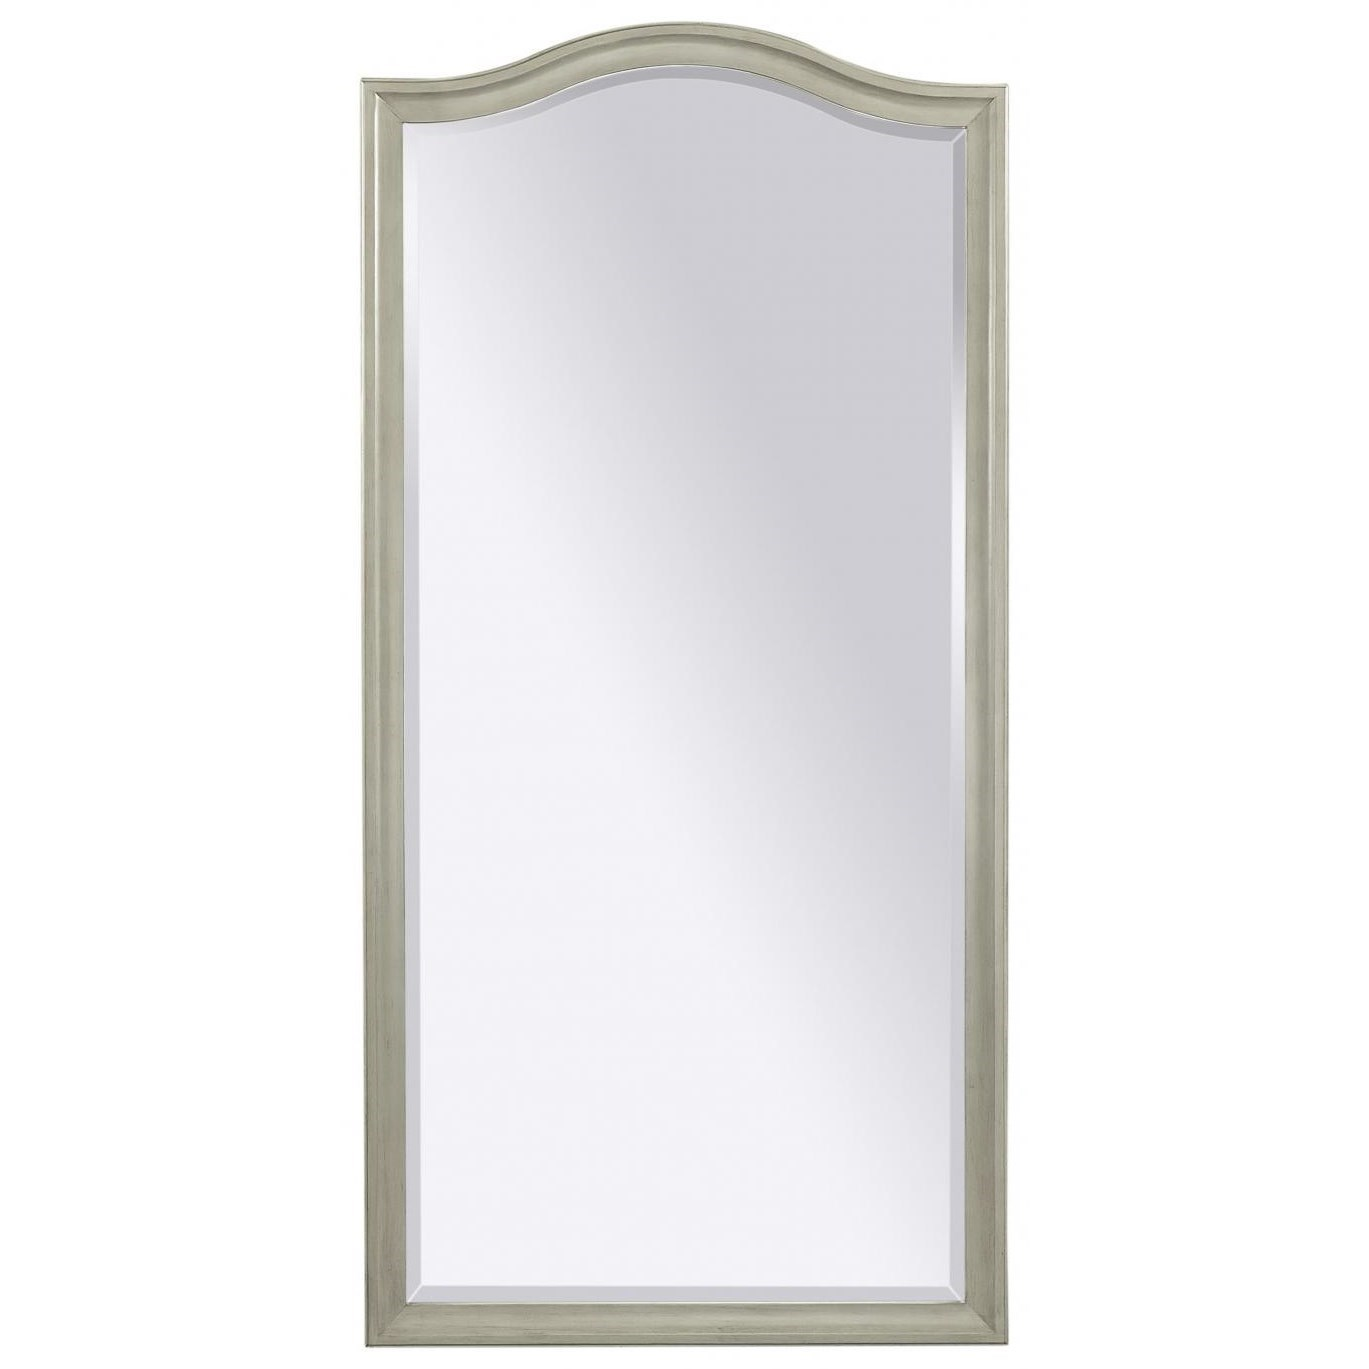 Charlotte  Floor Mirror by Aspenhome at Walker's Furniture